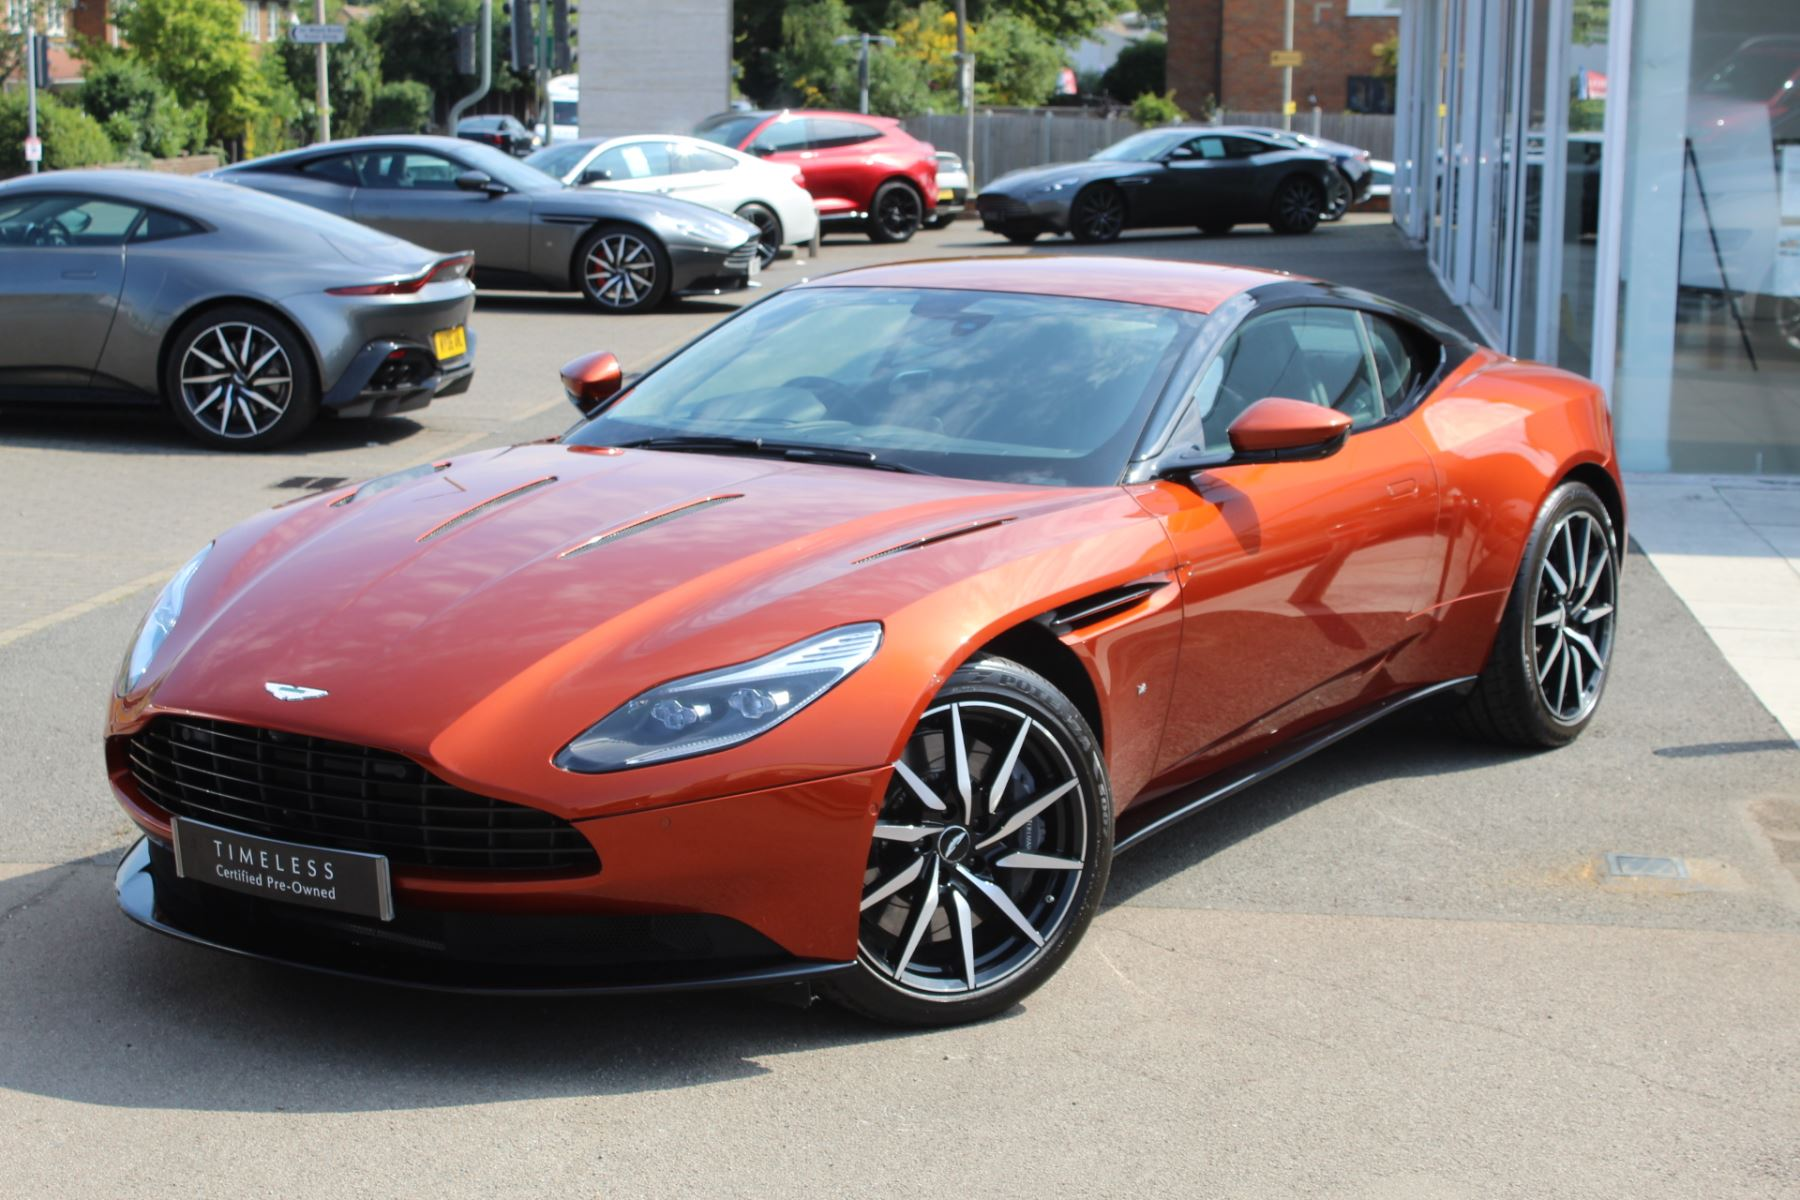 Aston Martin DB11 V12 2dr Touchtronic  Rare Launch Edition, 1 Owner  image 4